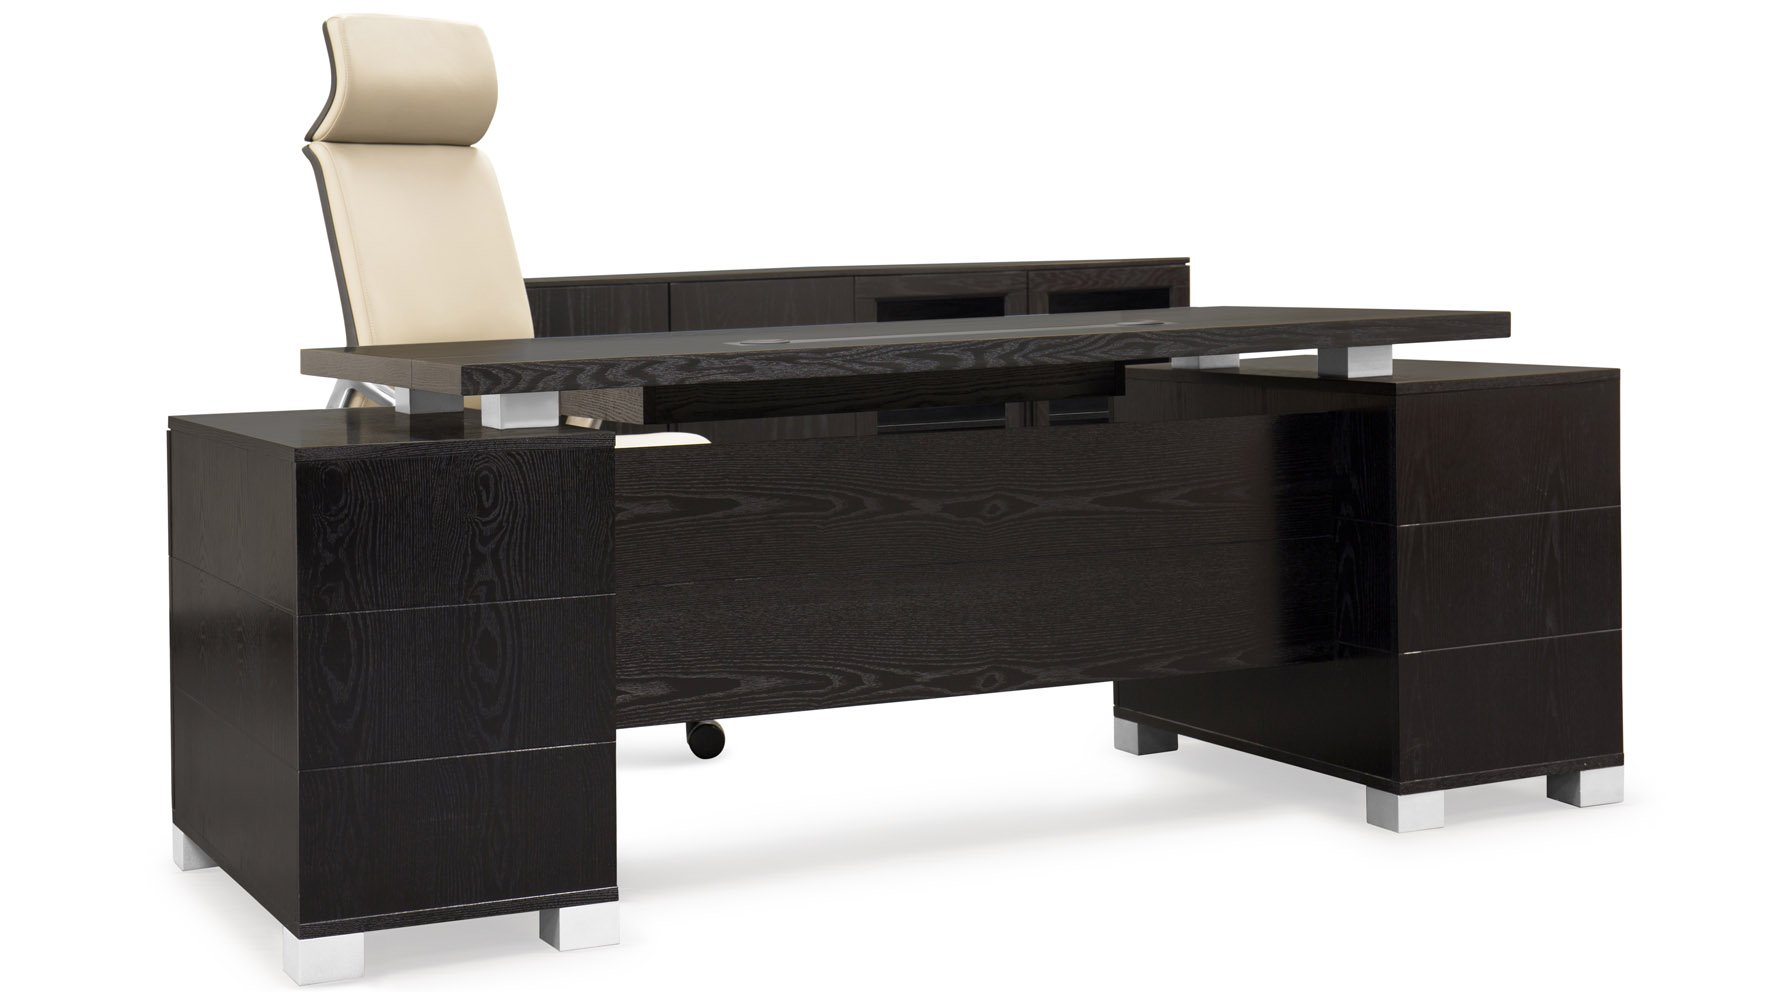 Tremendous Large Office Desk: Ford Executive Modern Desk With Filing Cabinets